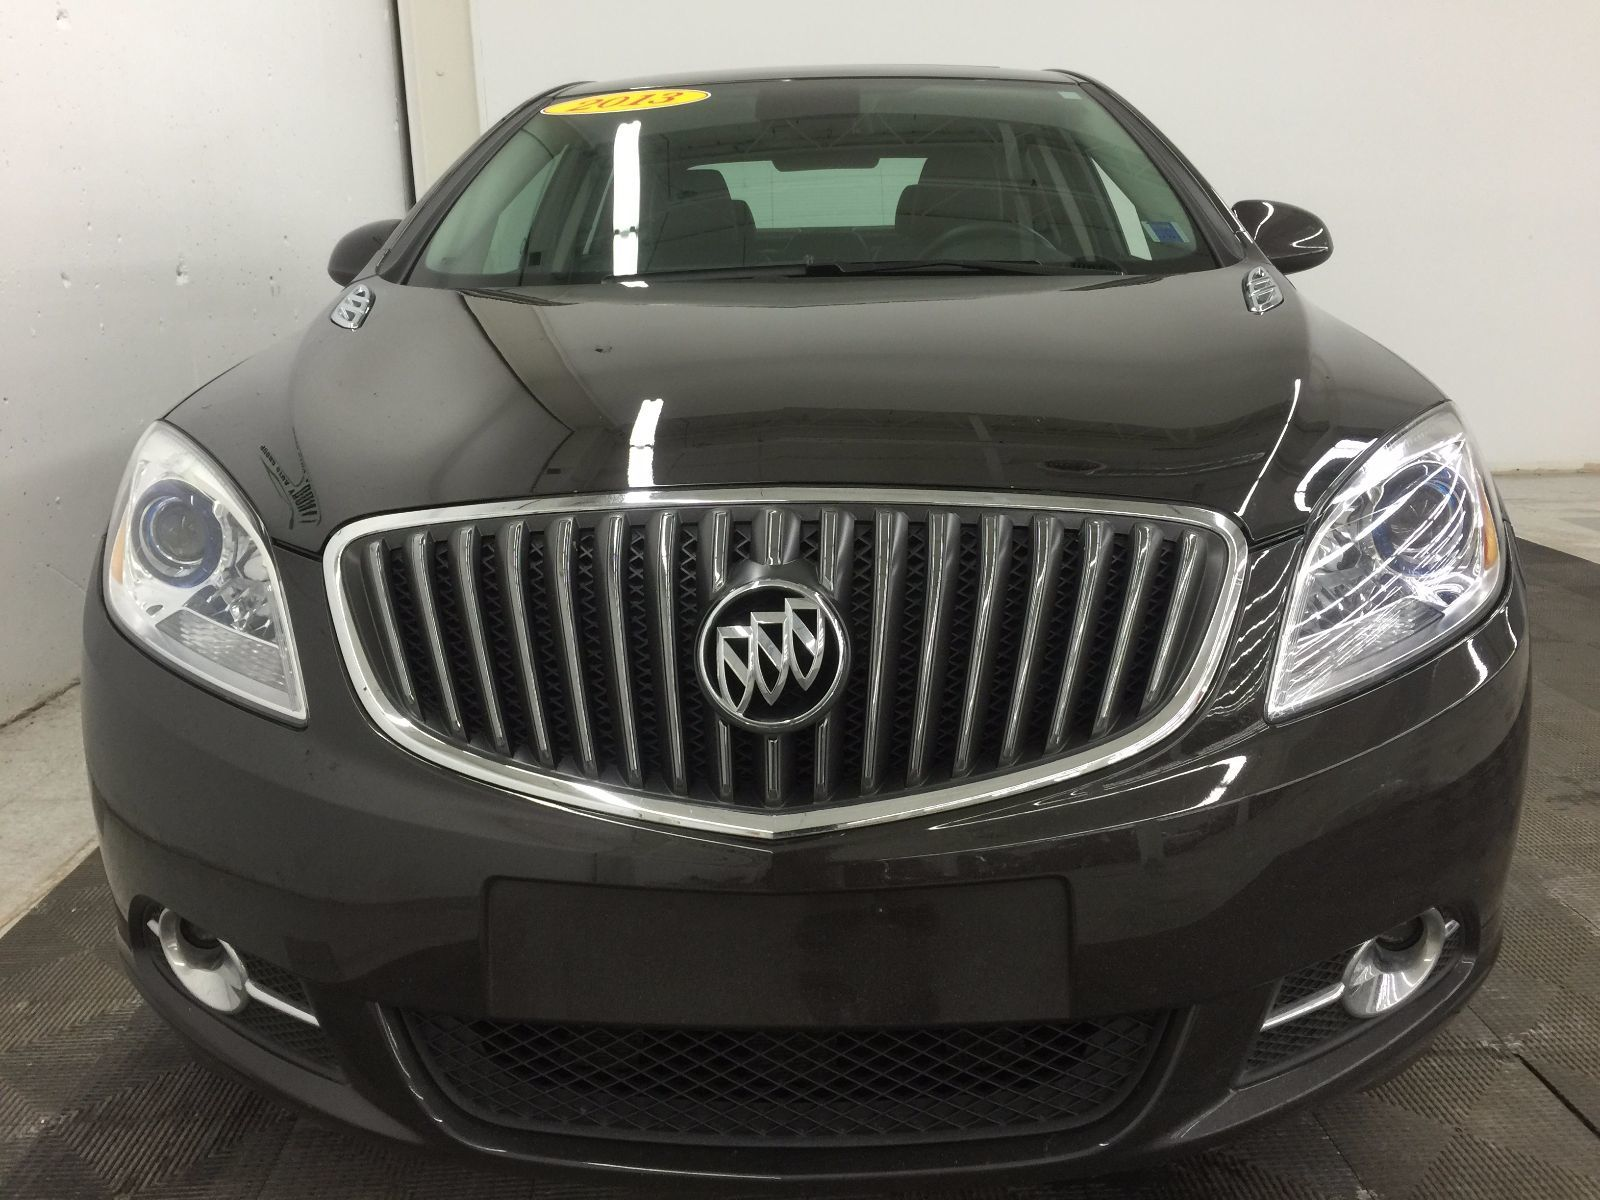 Used 2013 Buick Verano Leather in Kentville Used inventory